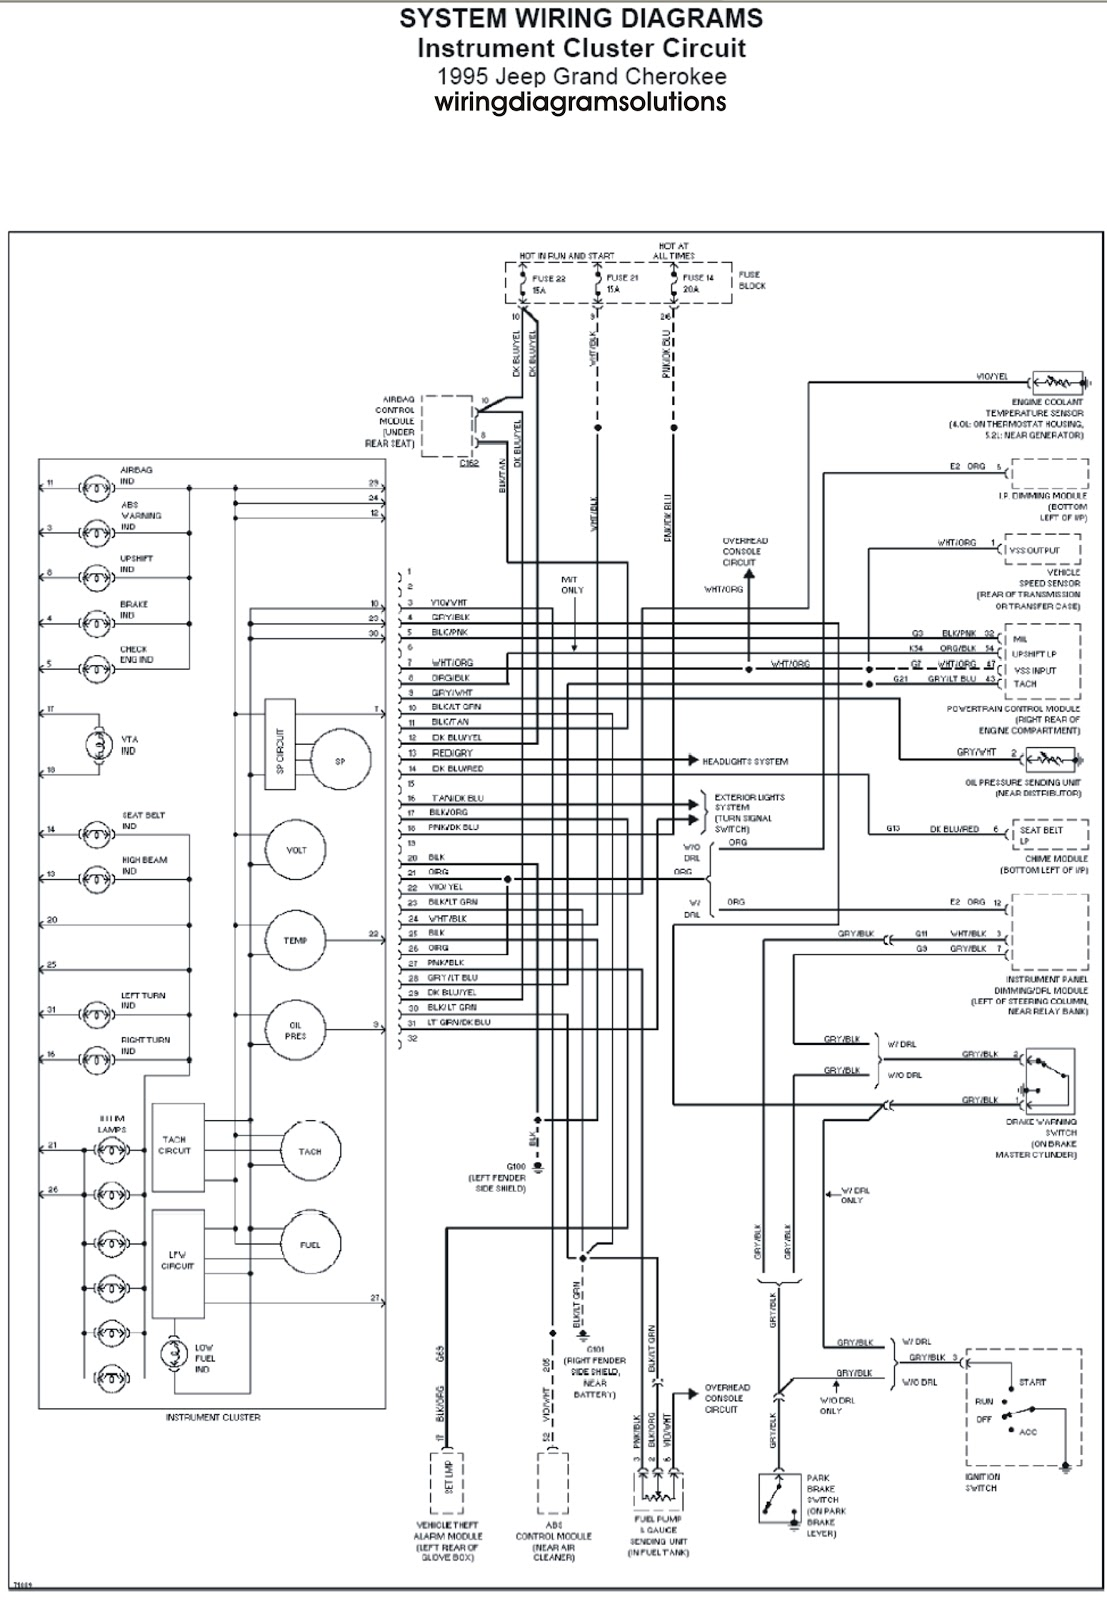 hight resolution of 1996 celica wiring diagram wiring diagram todays 2001 celica fuse diagram 1996 celica ignition wiring diagram